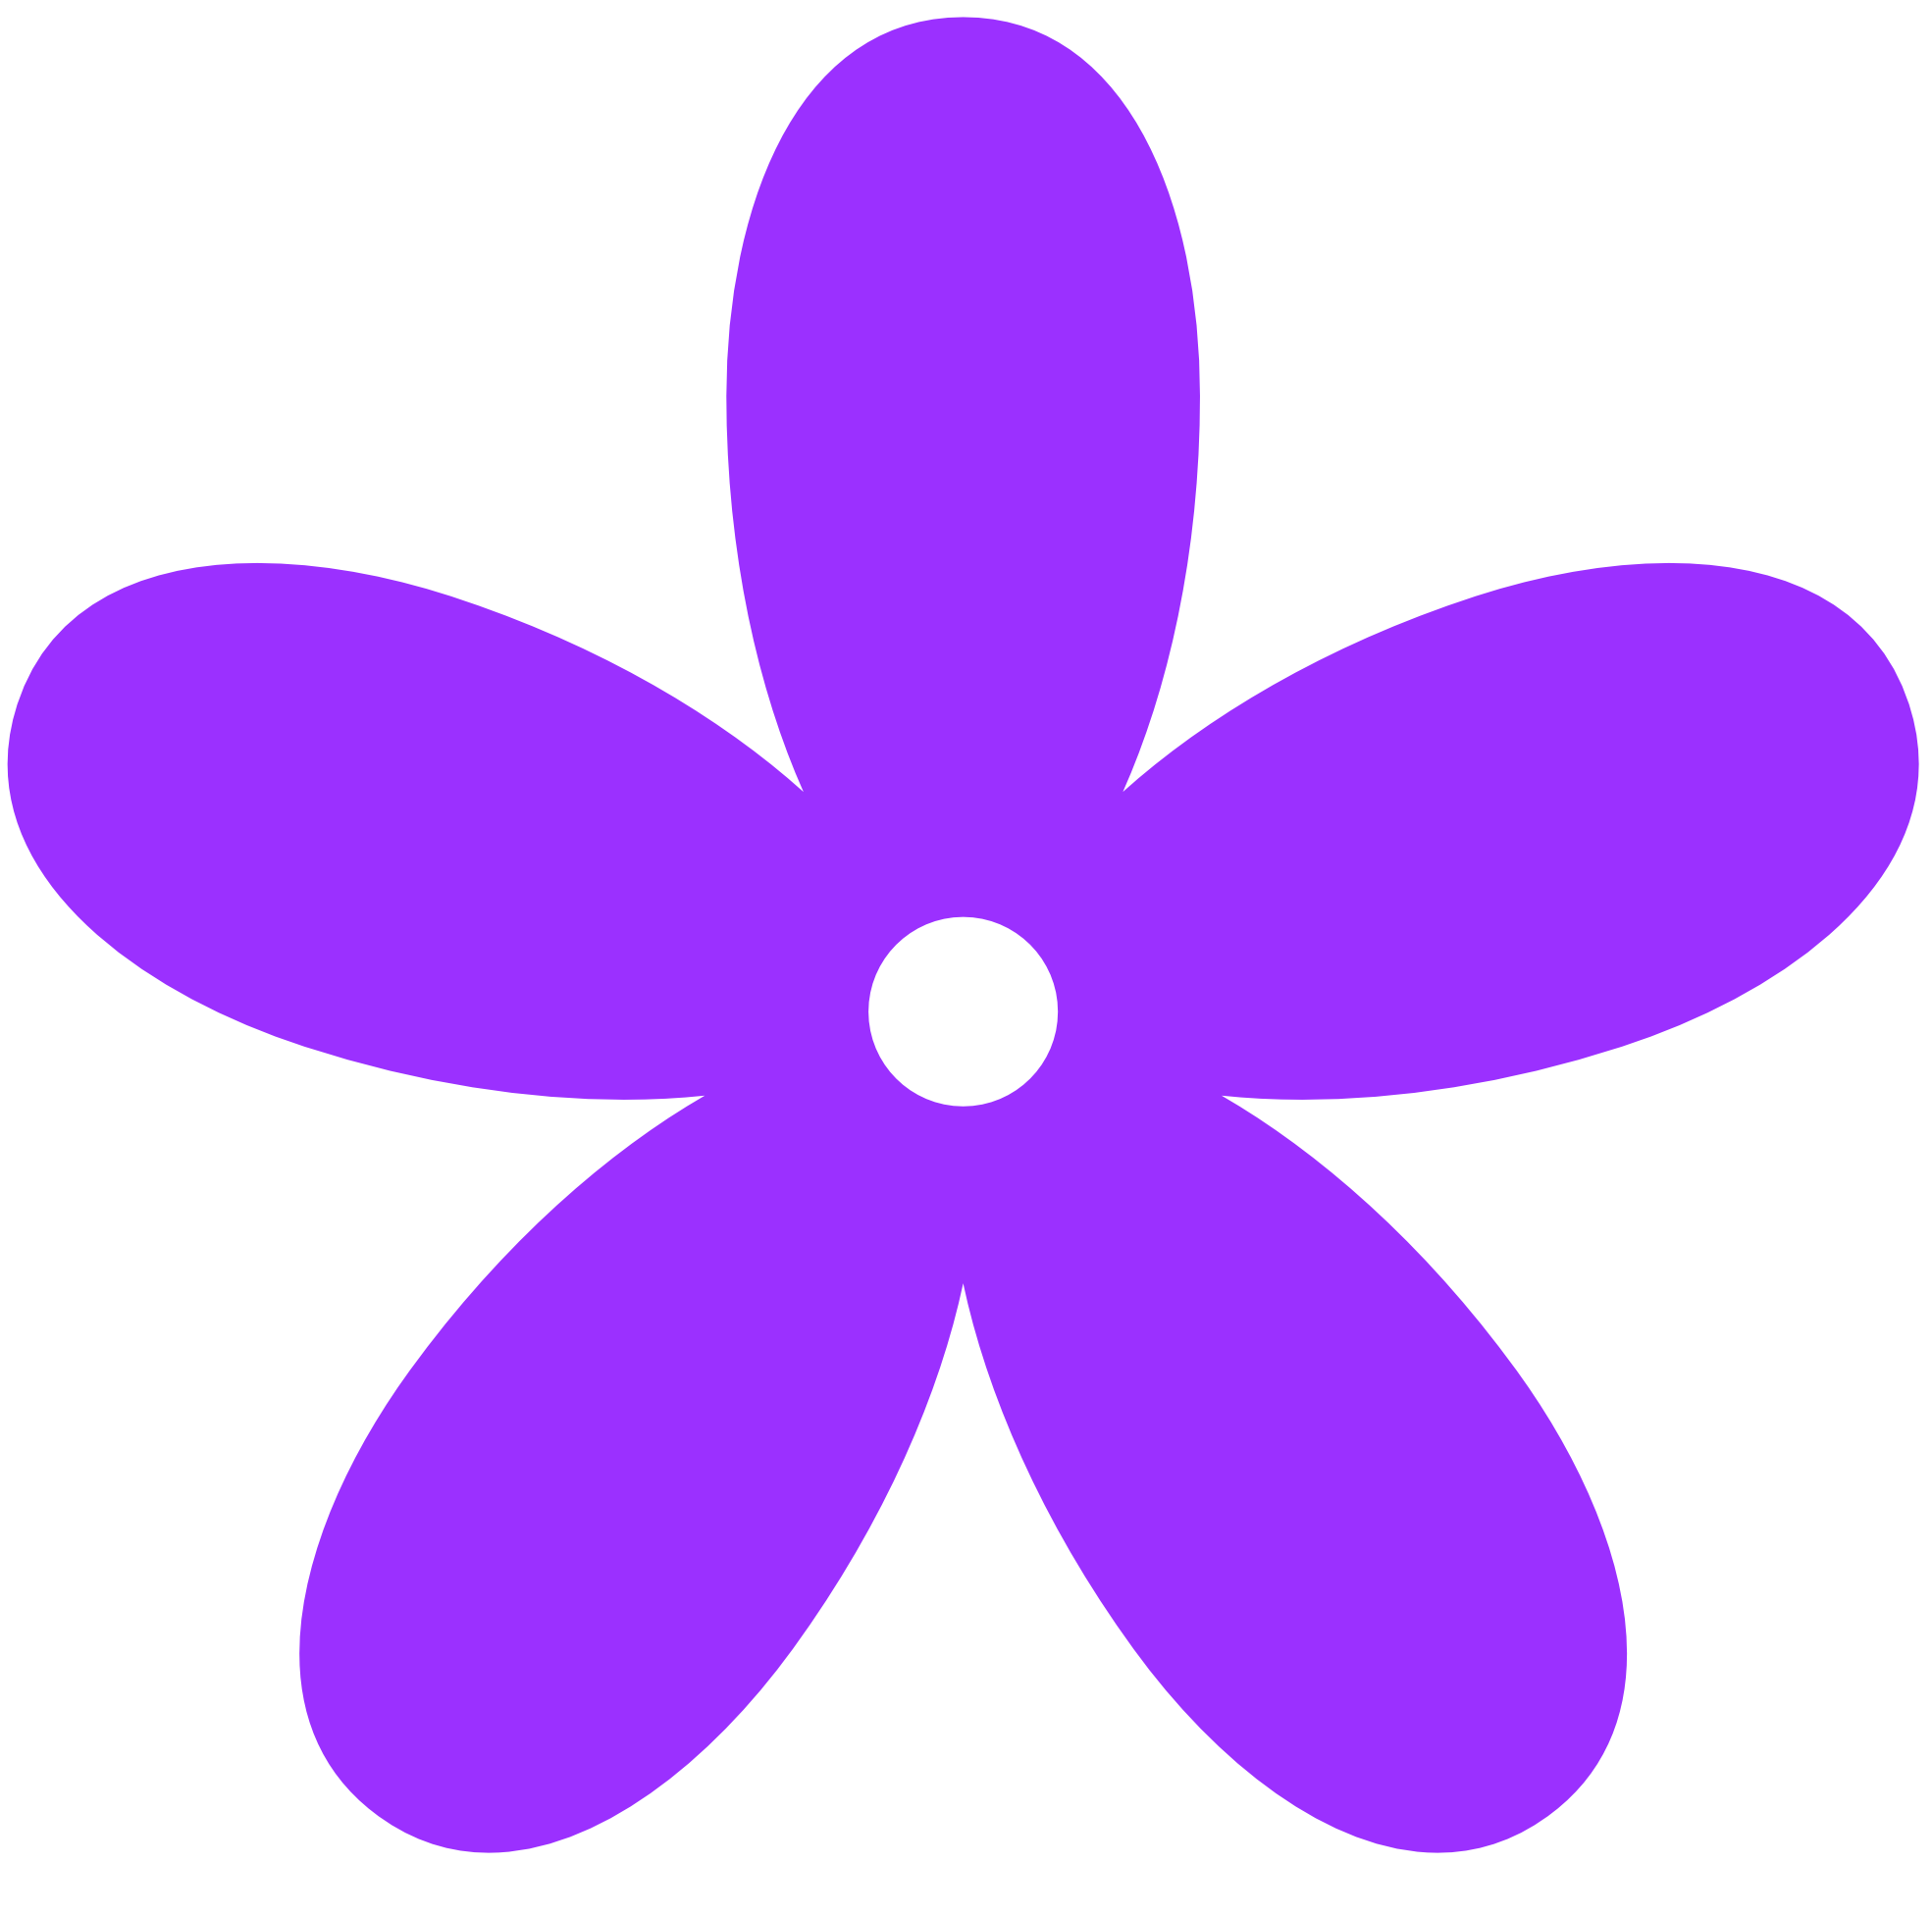 Violet flower clipart free clip art library stock Free Violet Flower Cliparts, Download Free Clip Art, Free ... clip art library stock